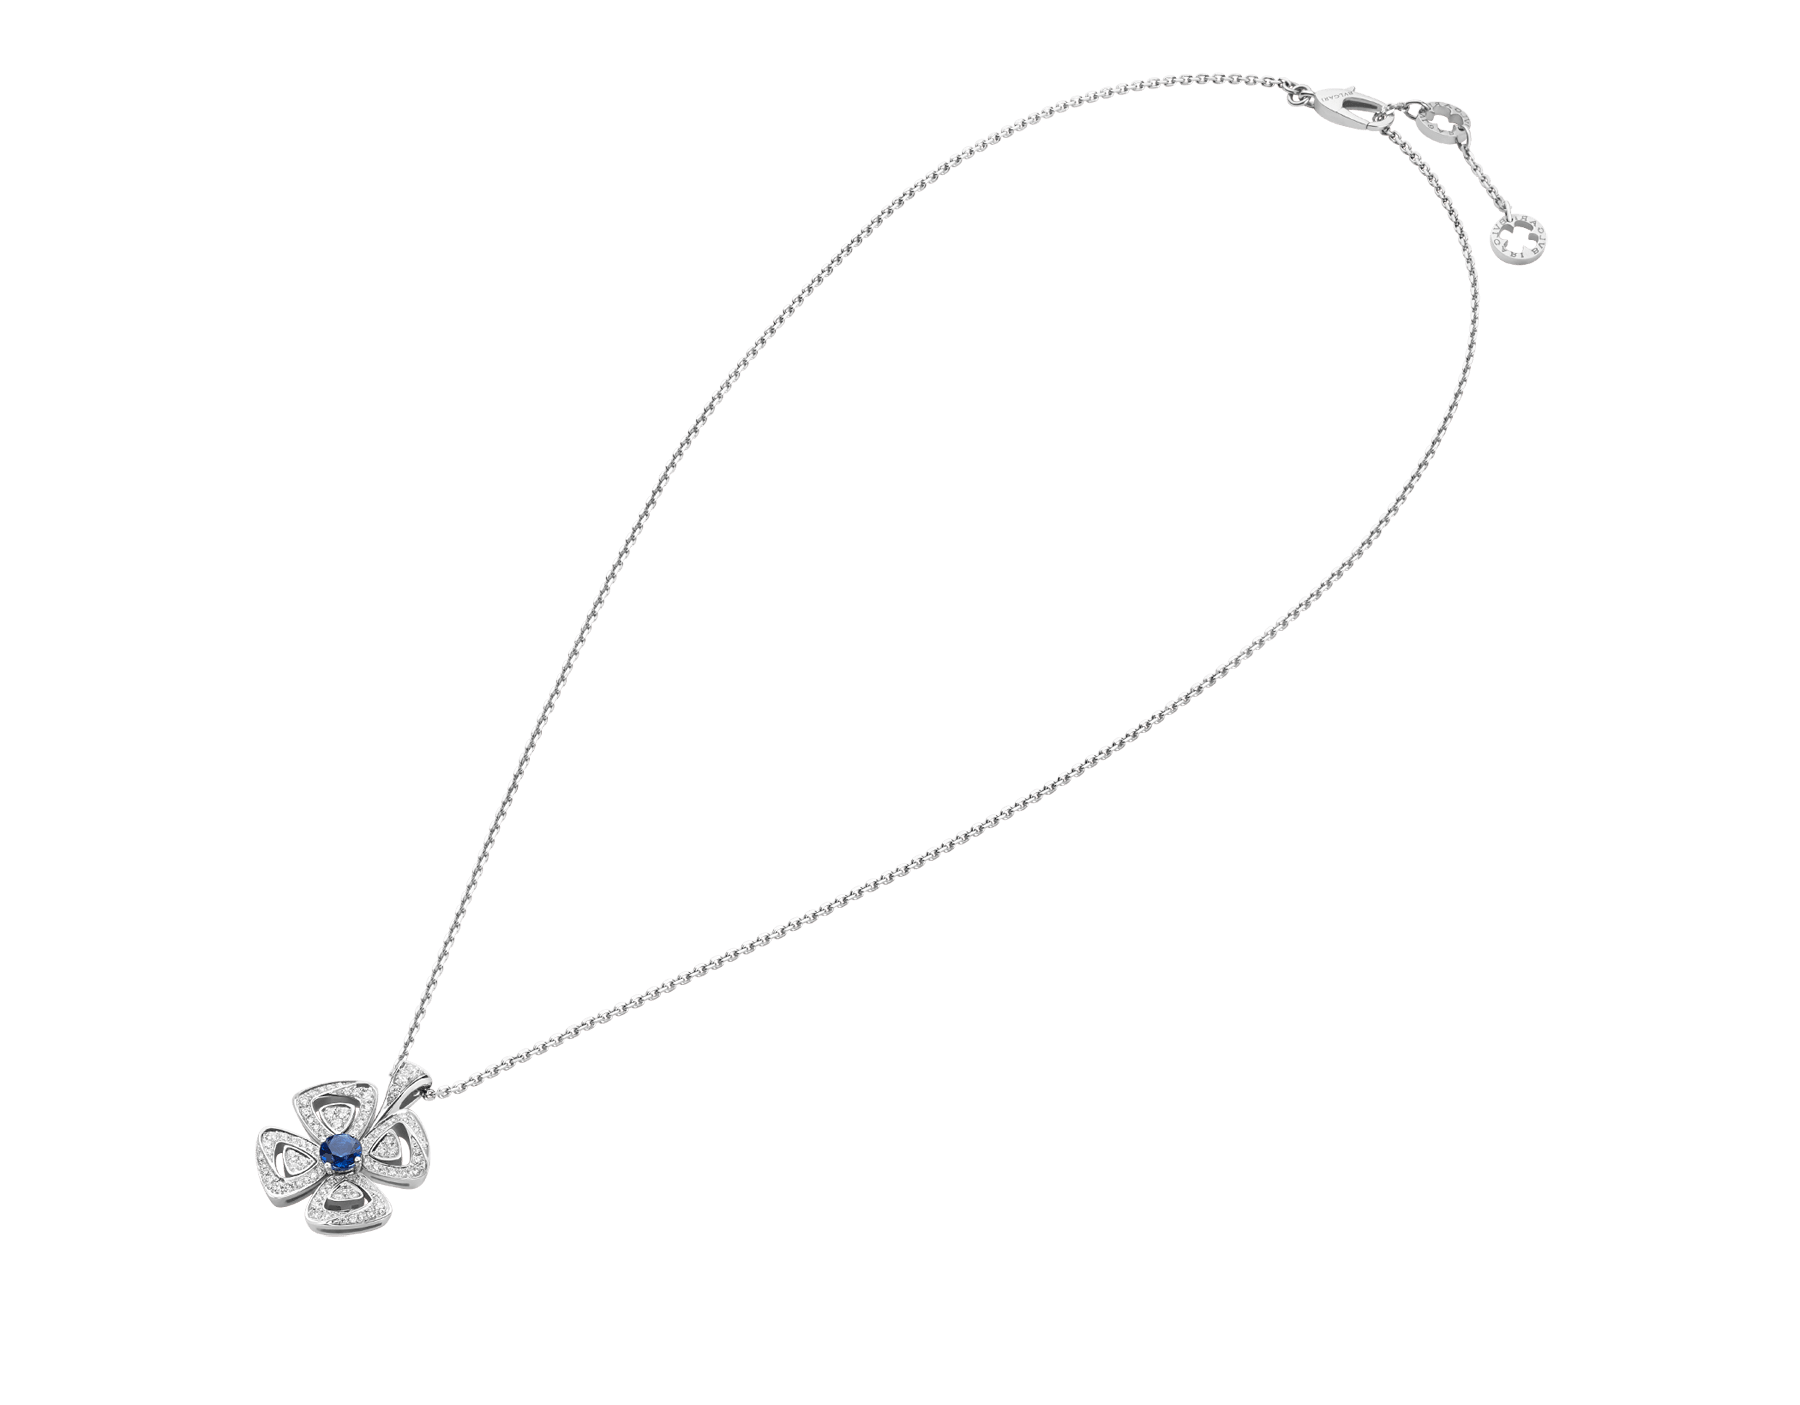 Fiorever 18 kt white gold pendant necklace set with a central brilliant-cut sapphire (0.43 ct) and pavé diamonds (0.31 ct) 358426 image 2